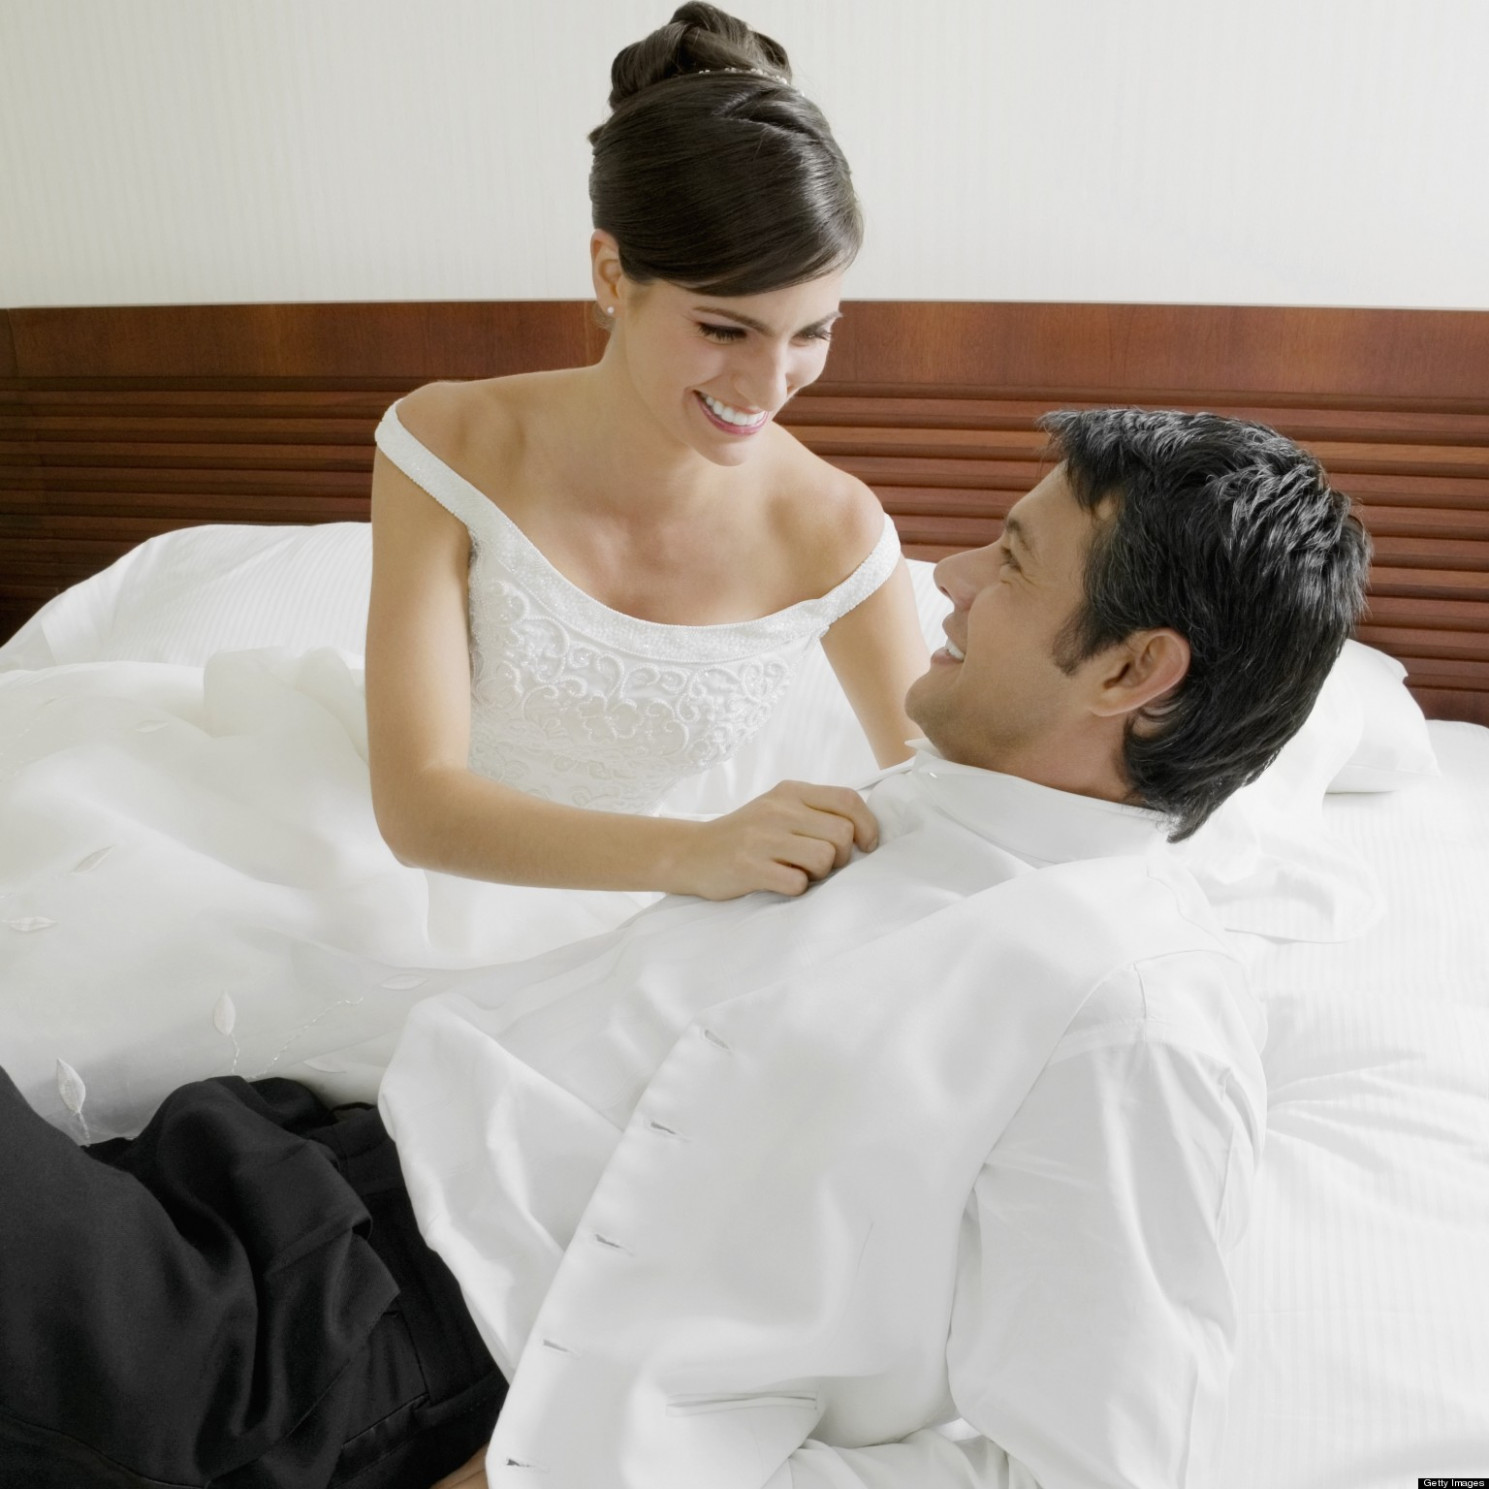 Wedding Night Sex: Readers Share Stories About Their First ...